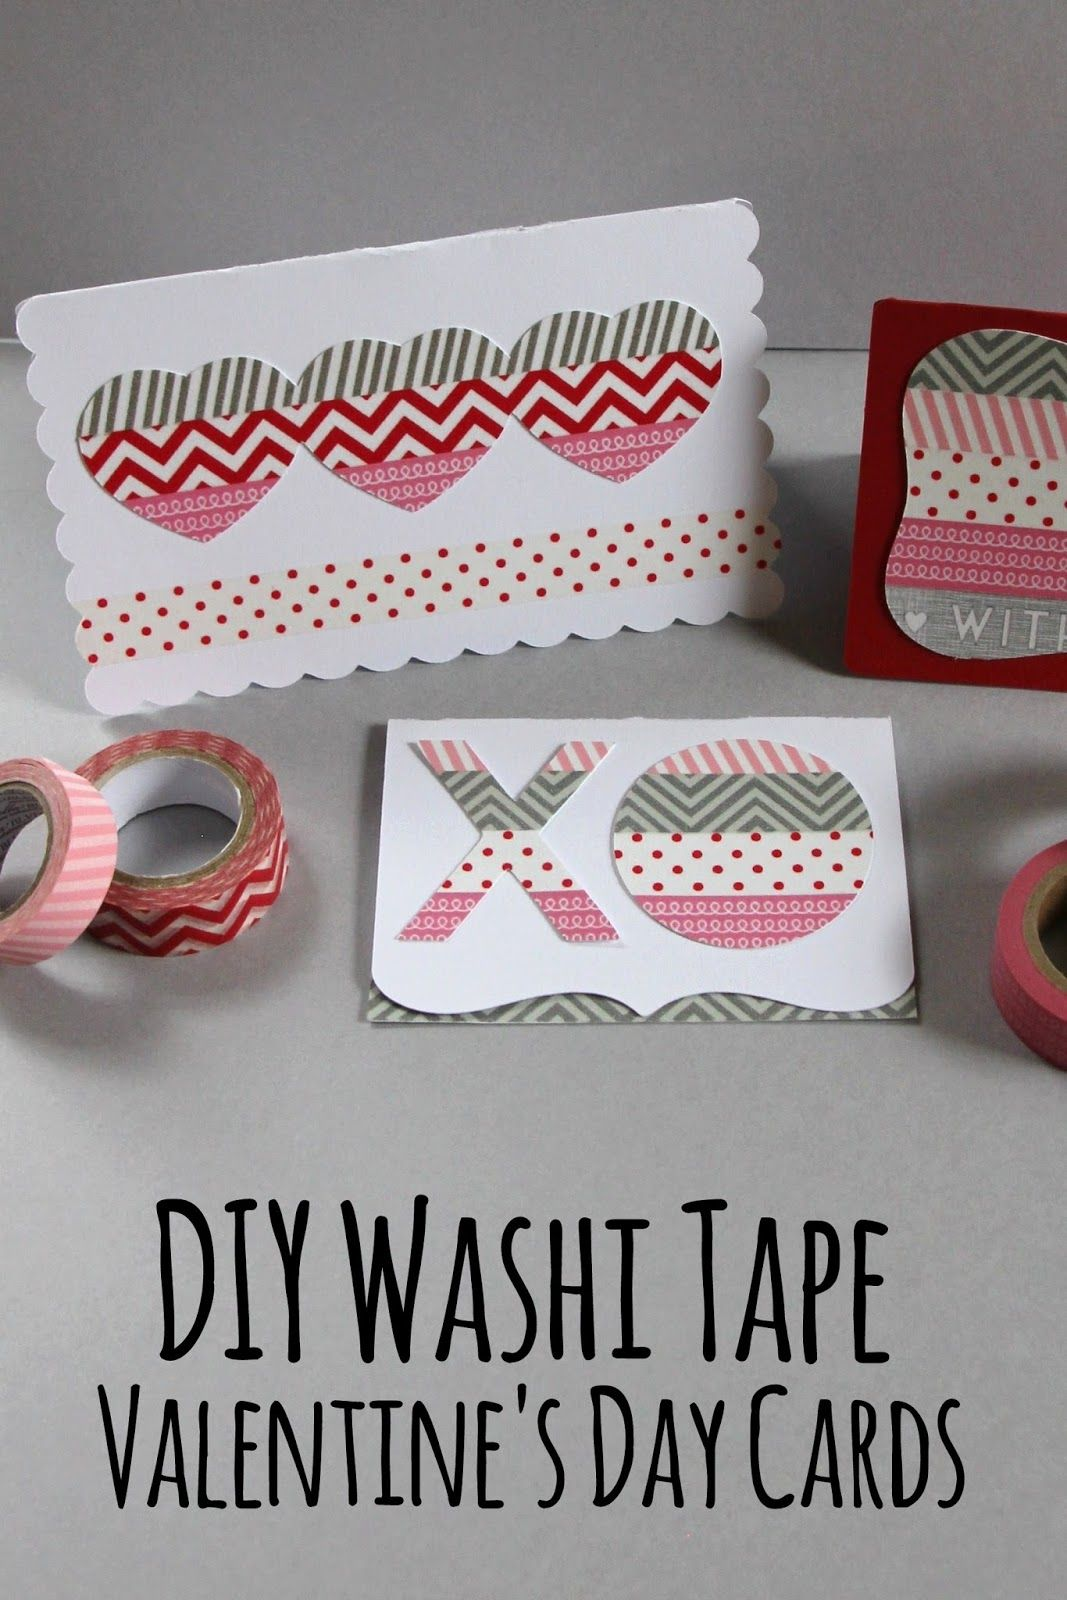 Lovely Little Life Diy Washi Tape Valentine S Day Cards Washi Tape Diy Washi Tape Cards Diy Washi